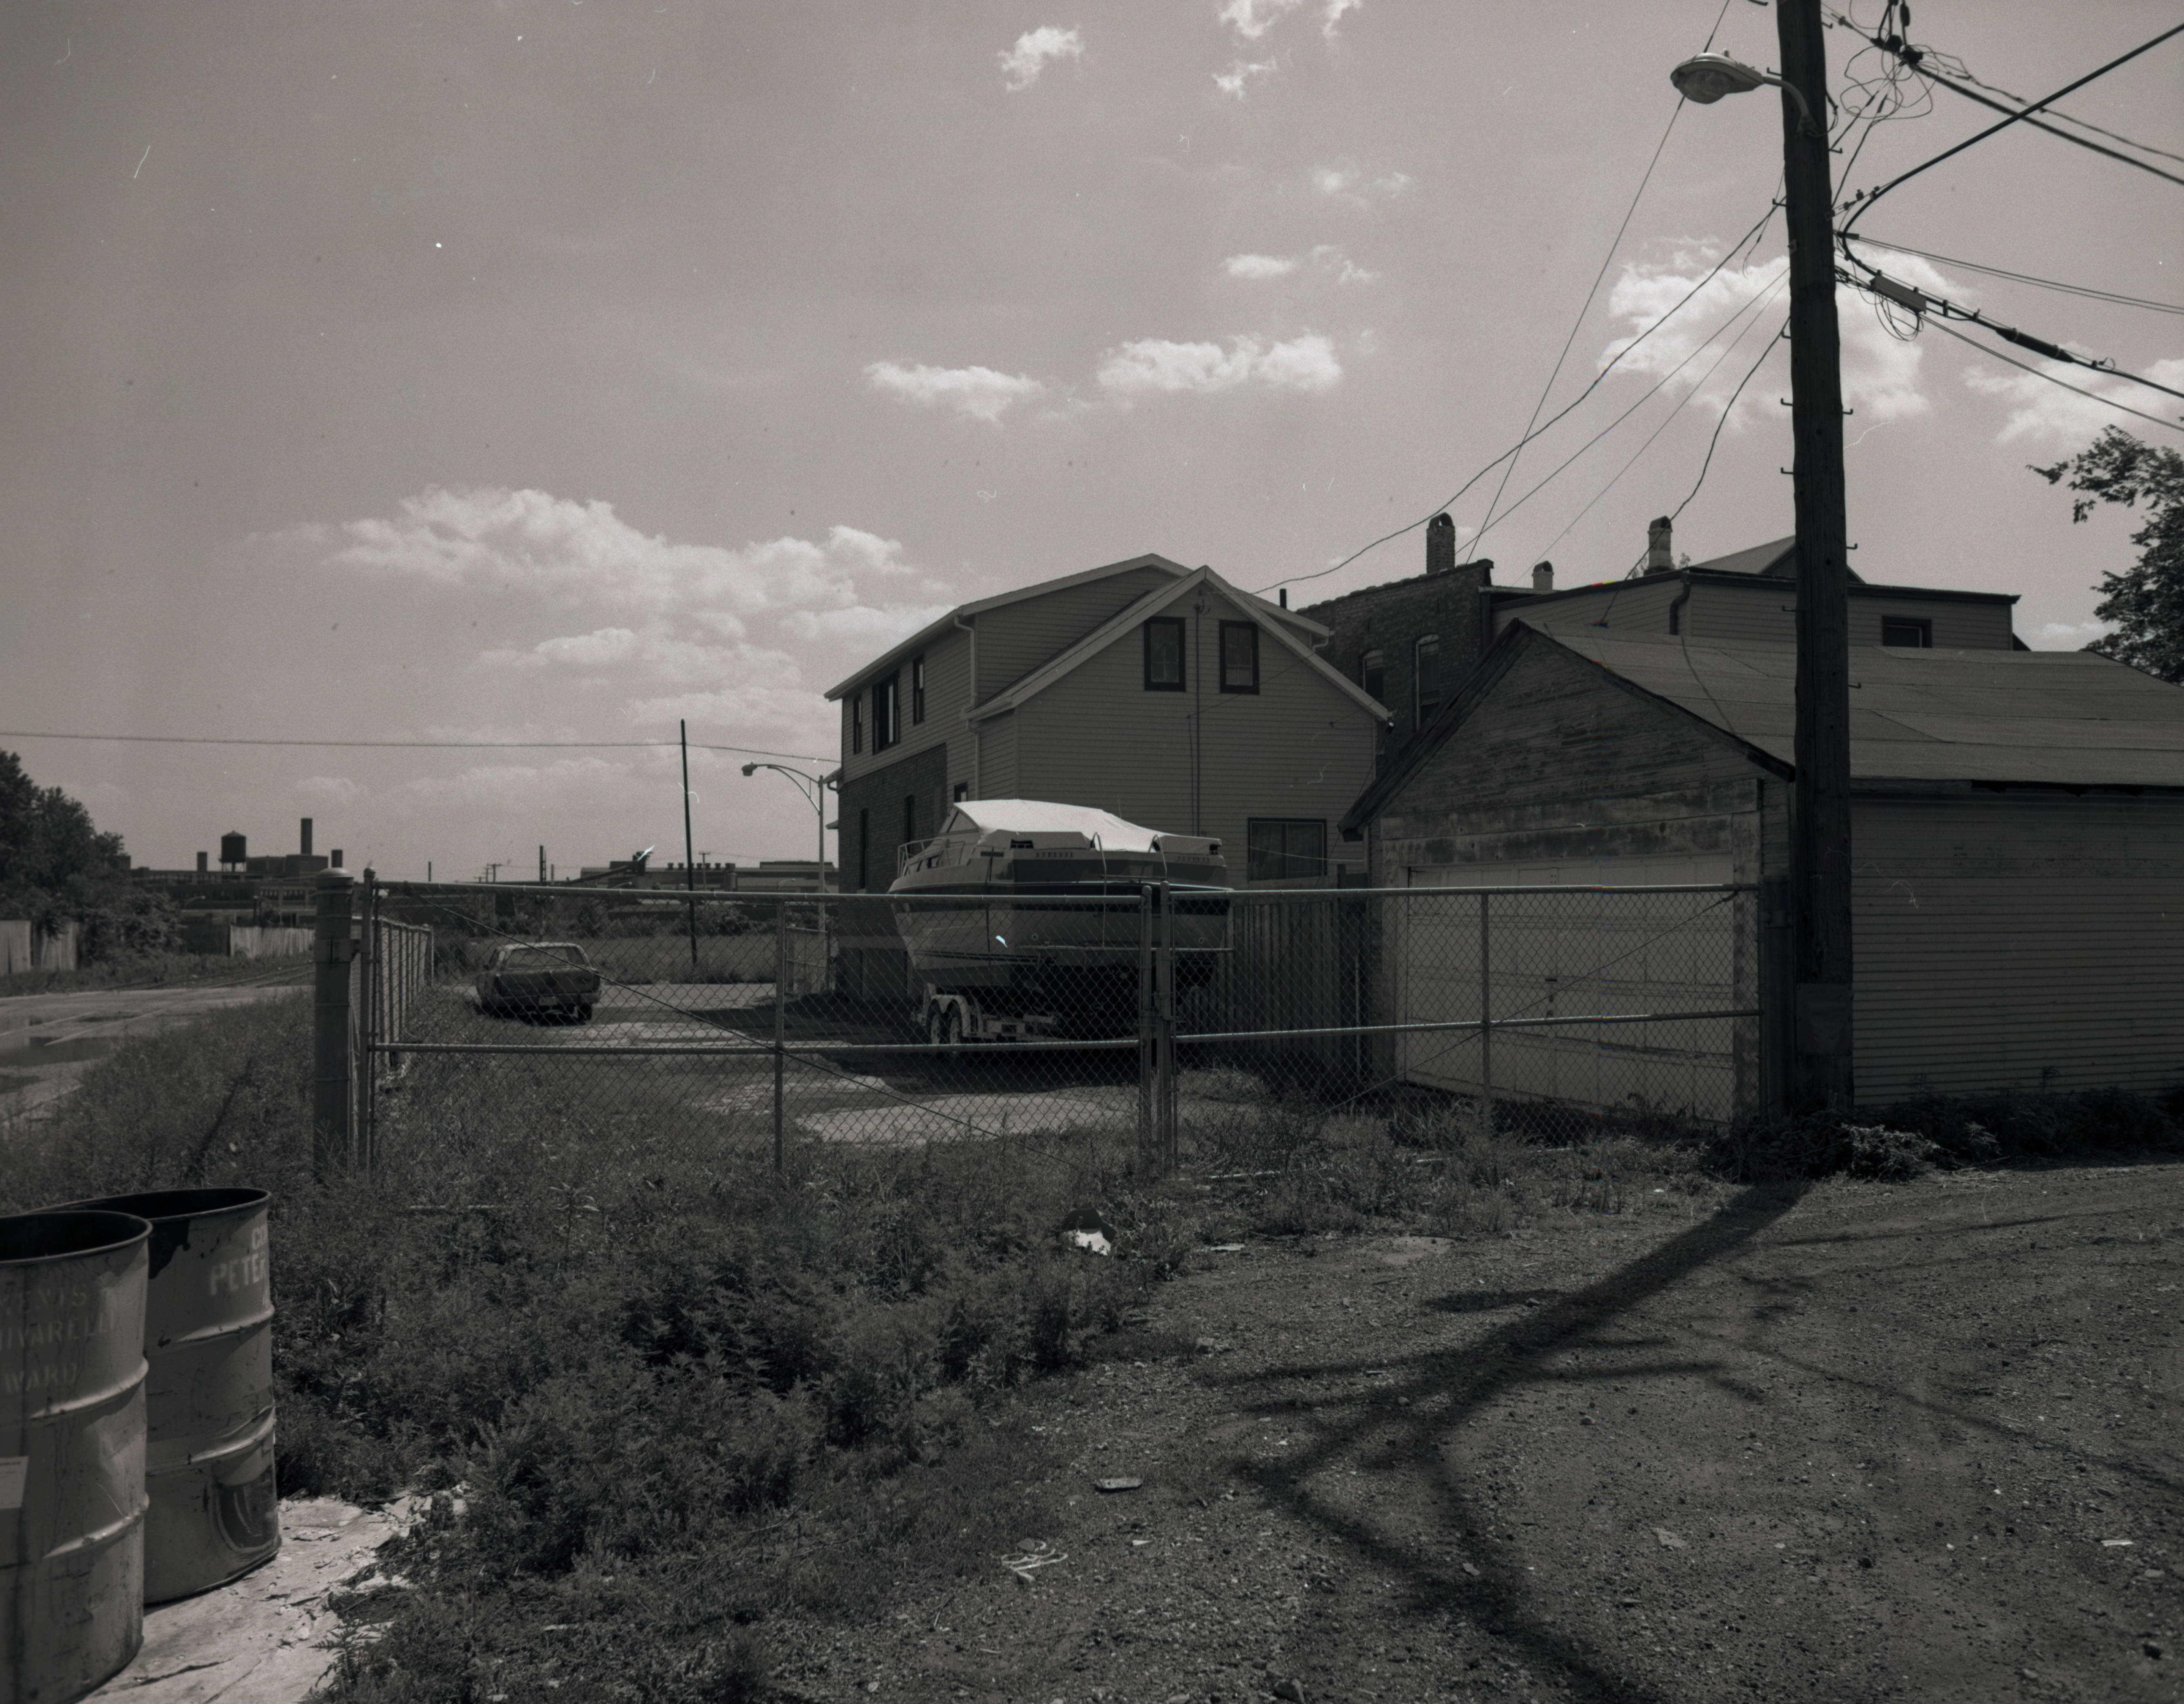 Newer homes are surrounded by chain-link fence. There is a boat on a trailer in the middle ground.